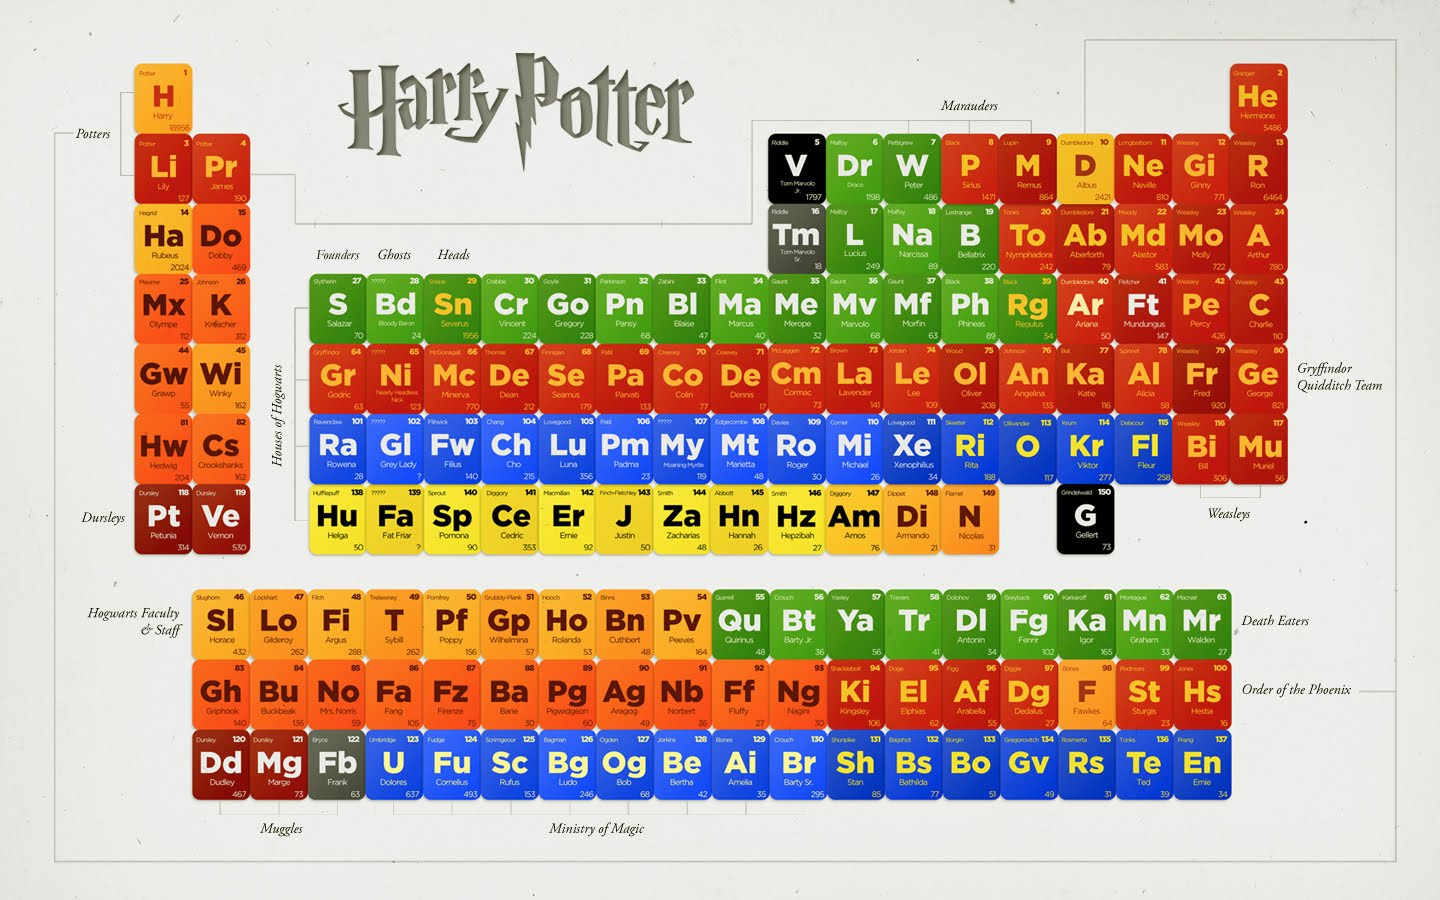 25th element of the periodic table image collections periodic patrice caldwell harry potter featured image gamestrikefo image collections gamestrikefo Images